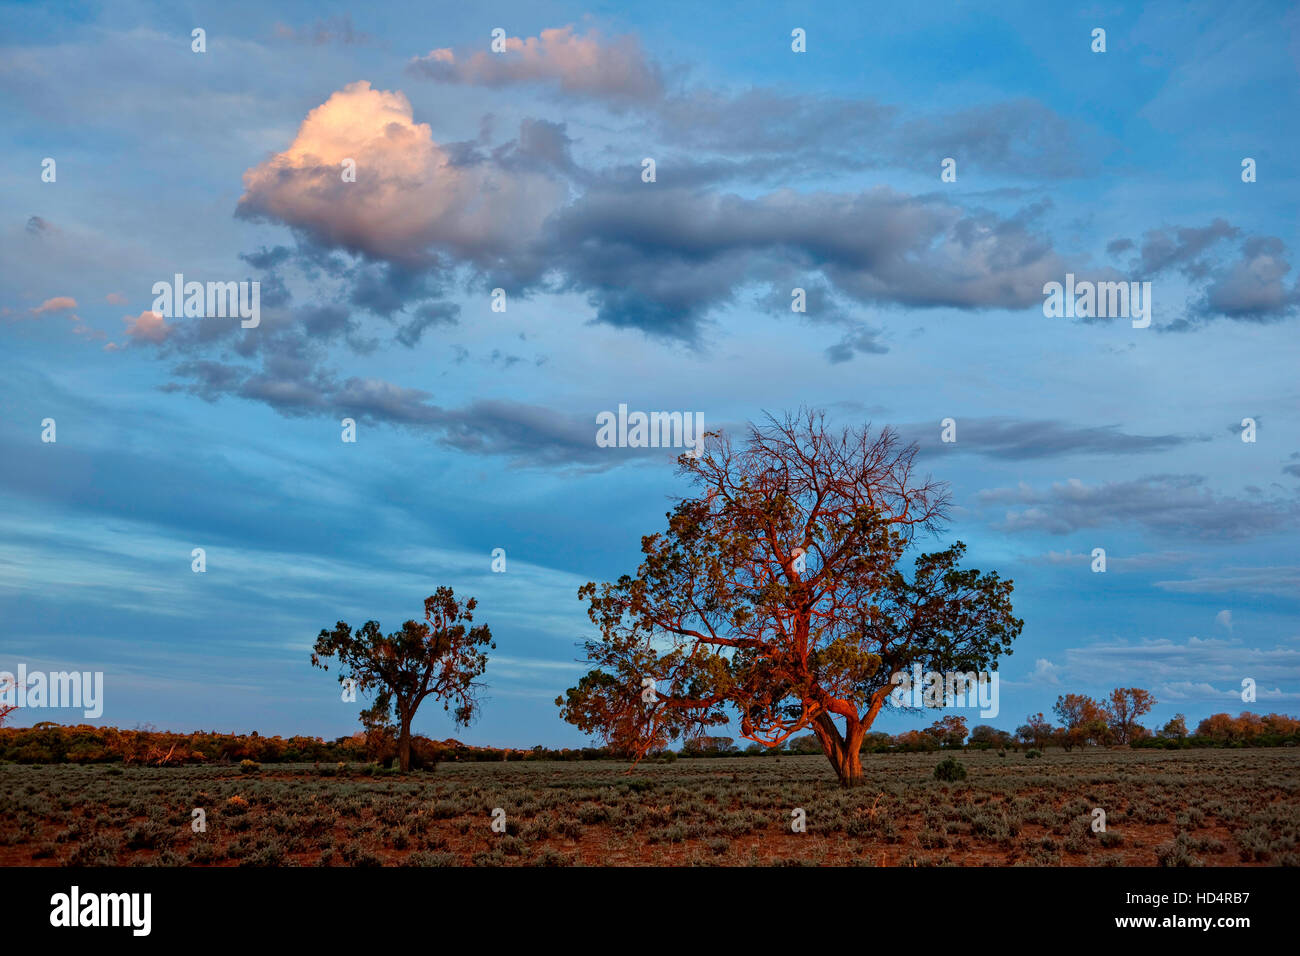 Last rays of light falling on trees in semi-arid Australian outback country - Stock Image